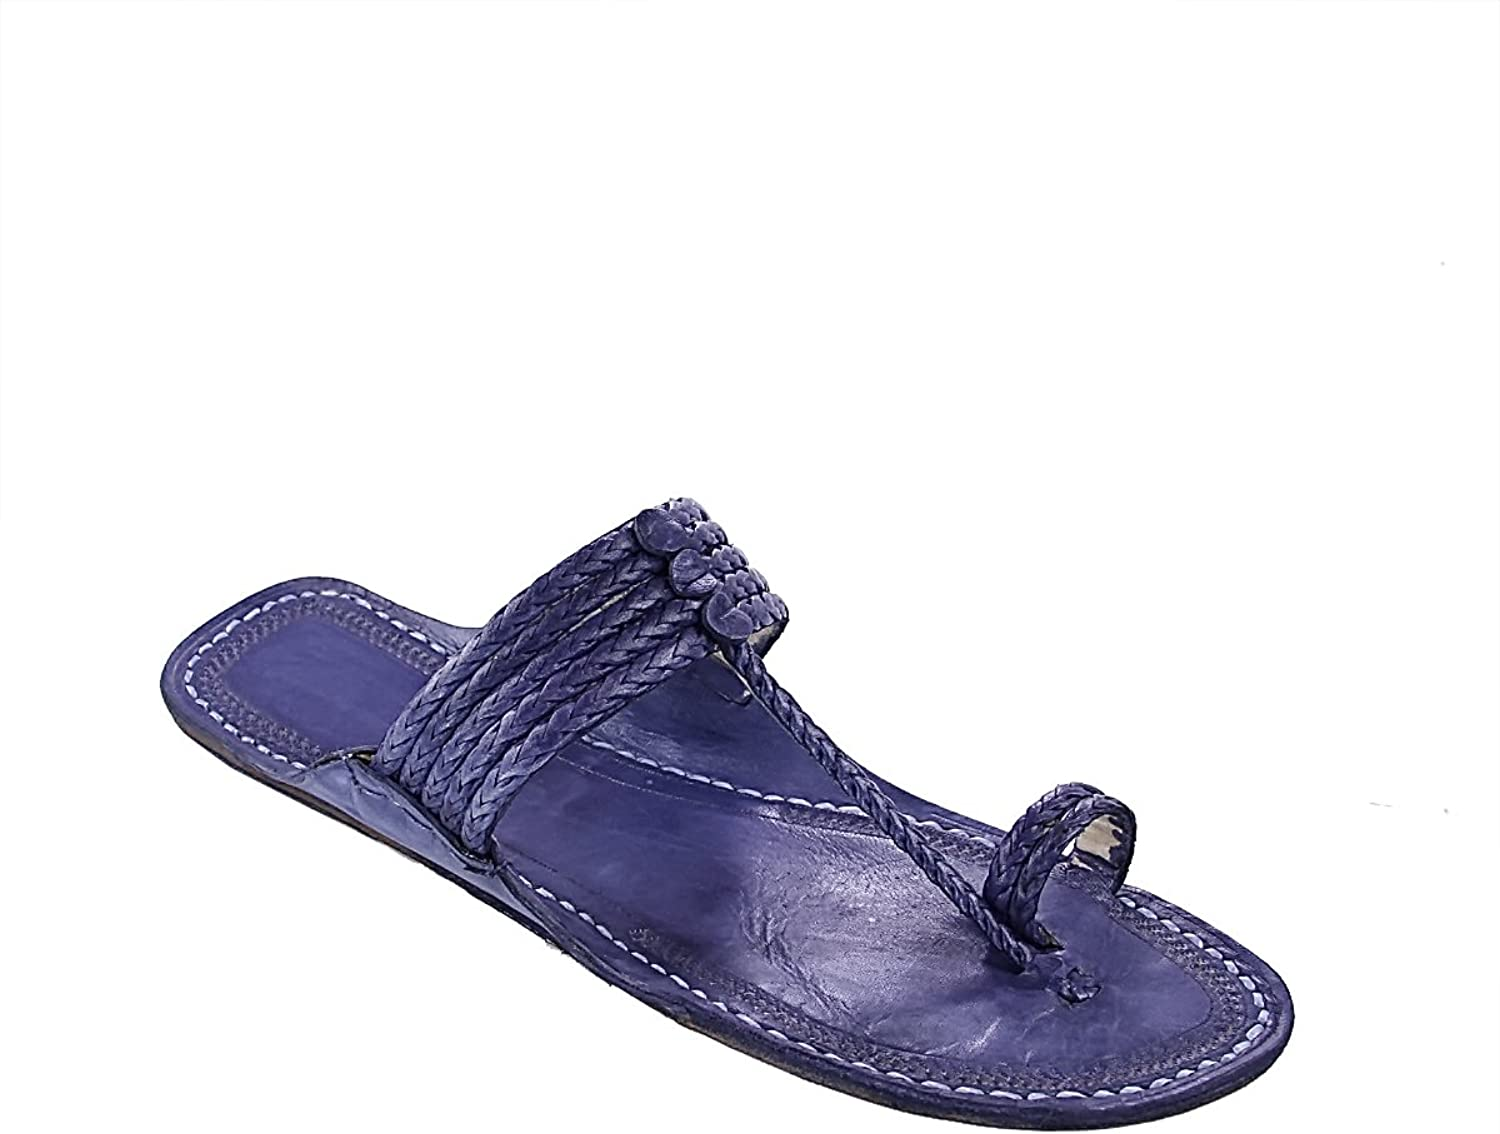 KOLHAPURI CHAPPAL Original Gorgeous Dark bluee Five Braids Kolhapuri Women Chappal Slipper Sandal